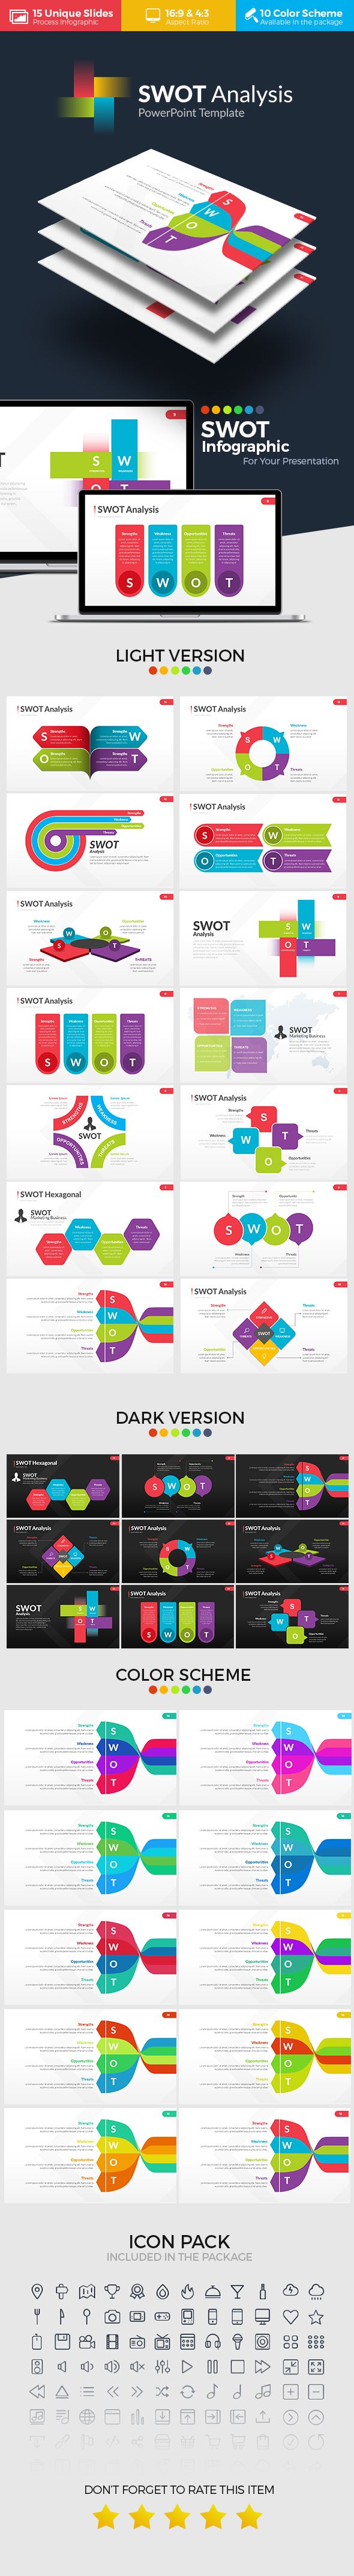 SWOT Analysis  #1920x1080 #innovation process • Download ➝ https://graphicriver.net/item/swot-analysis/18193001?ref=pxcr